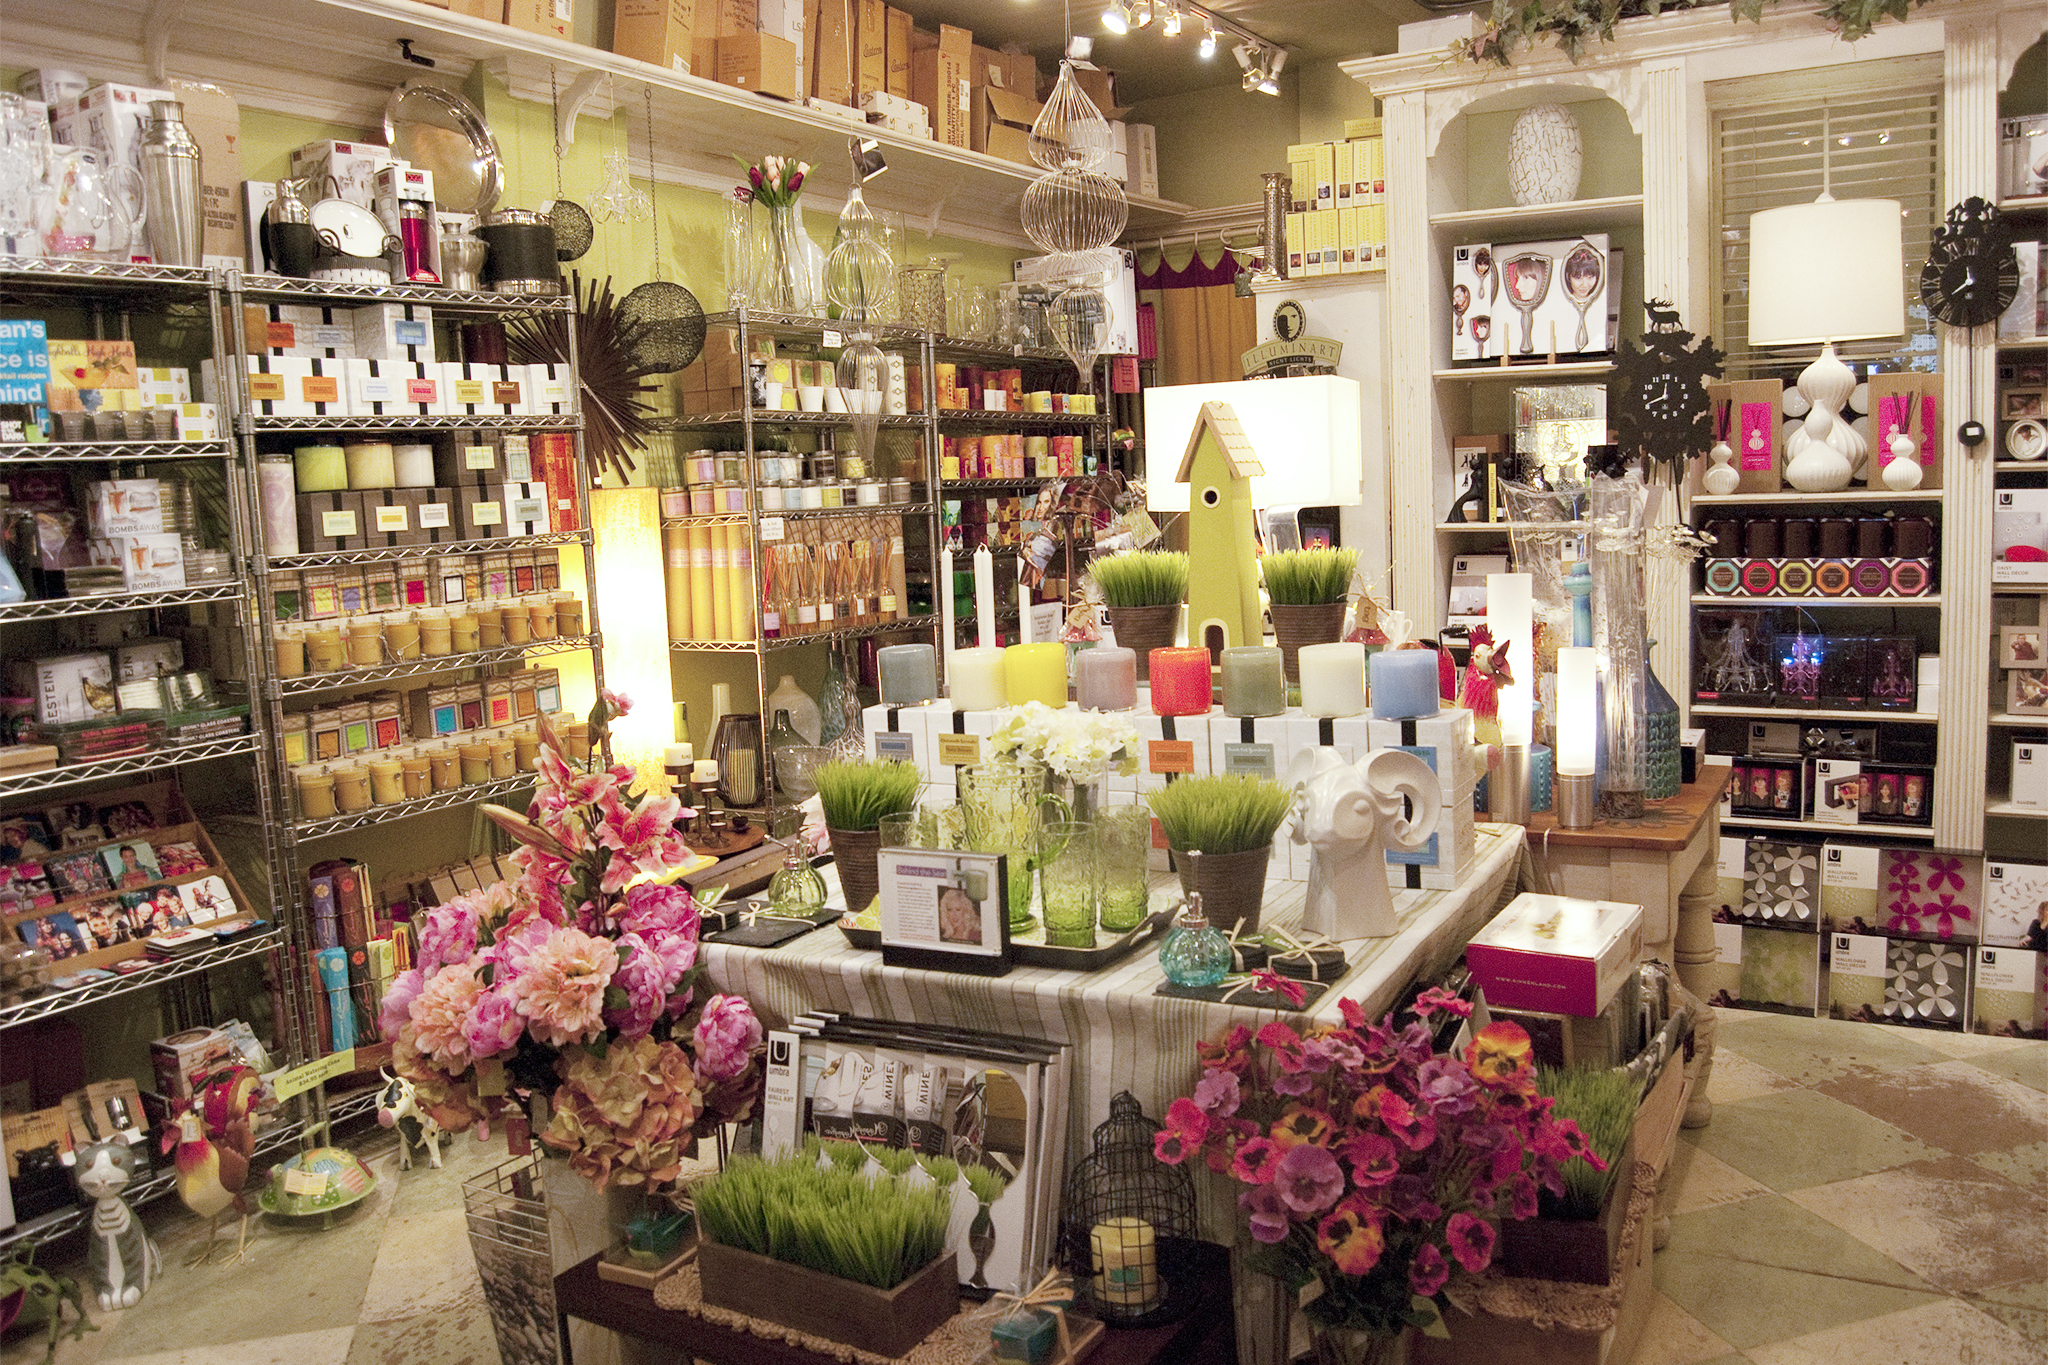 delphinium home - Home Decor Stores